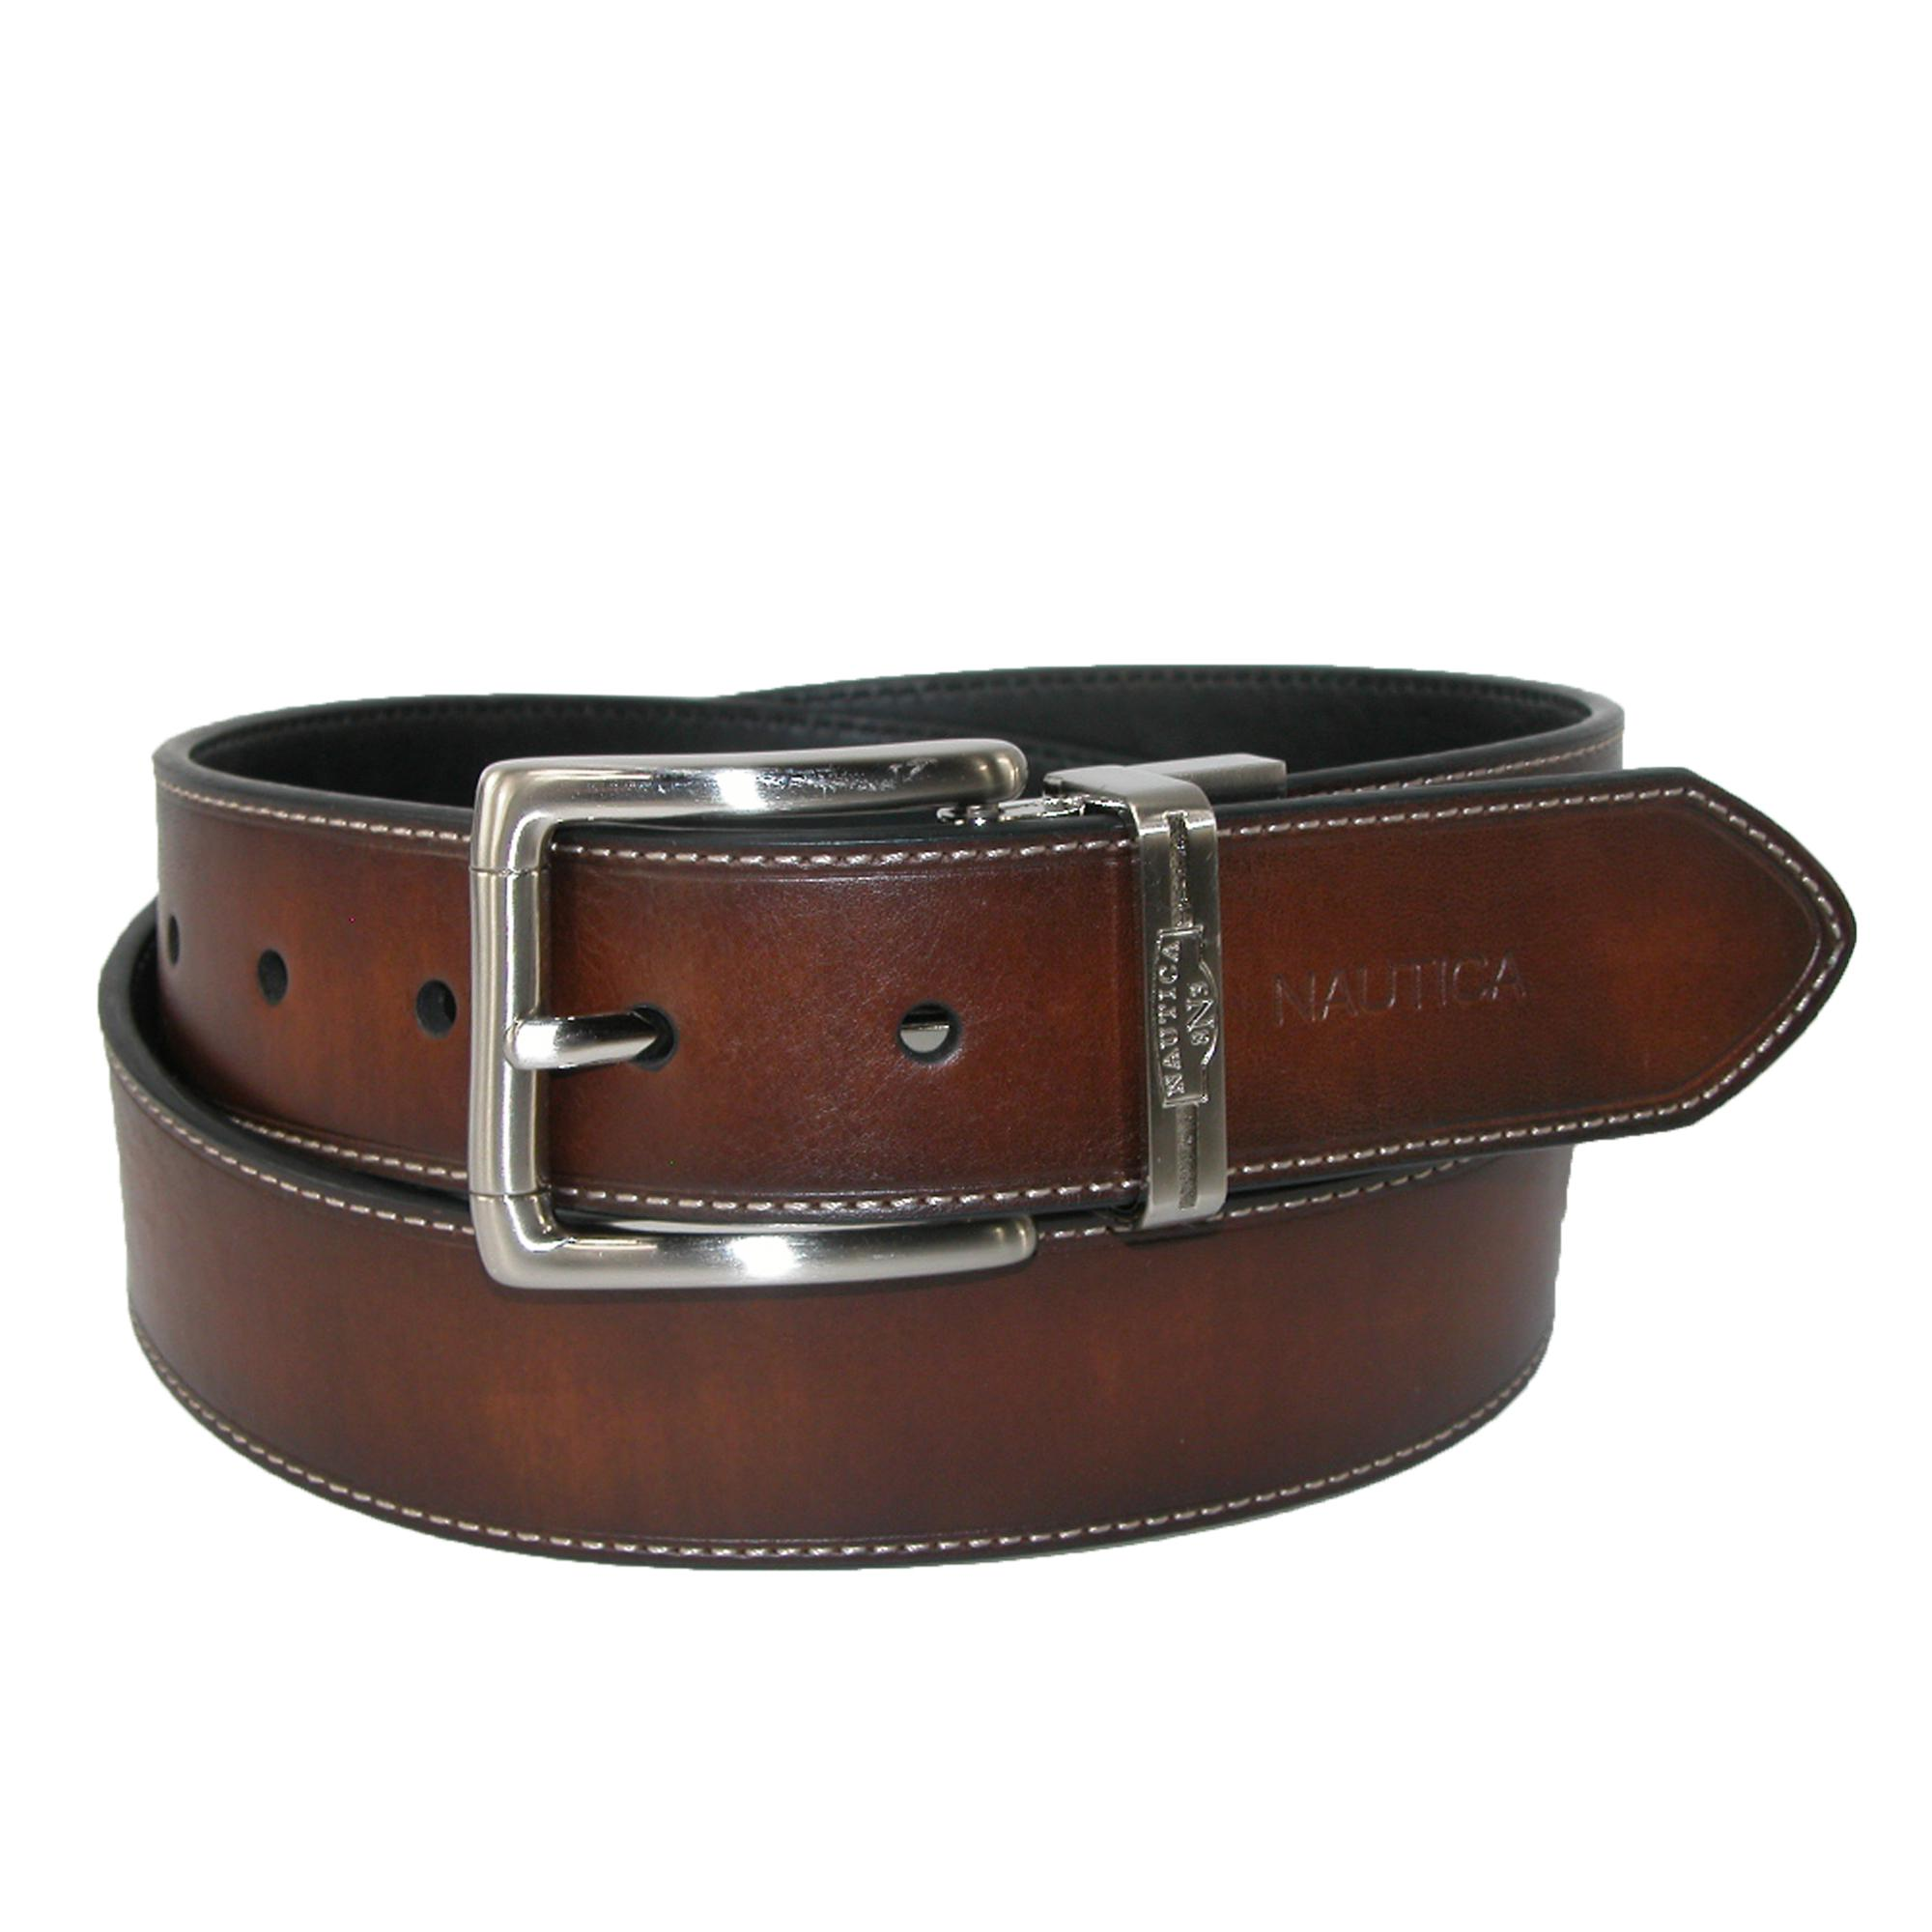 Nautica Mens Leather Reversible Belt With Heat Crease And Contrast Stitch